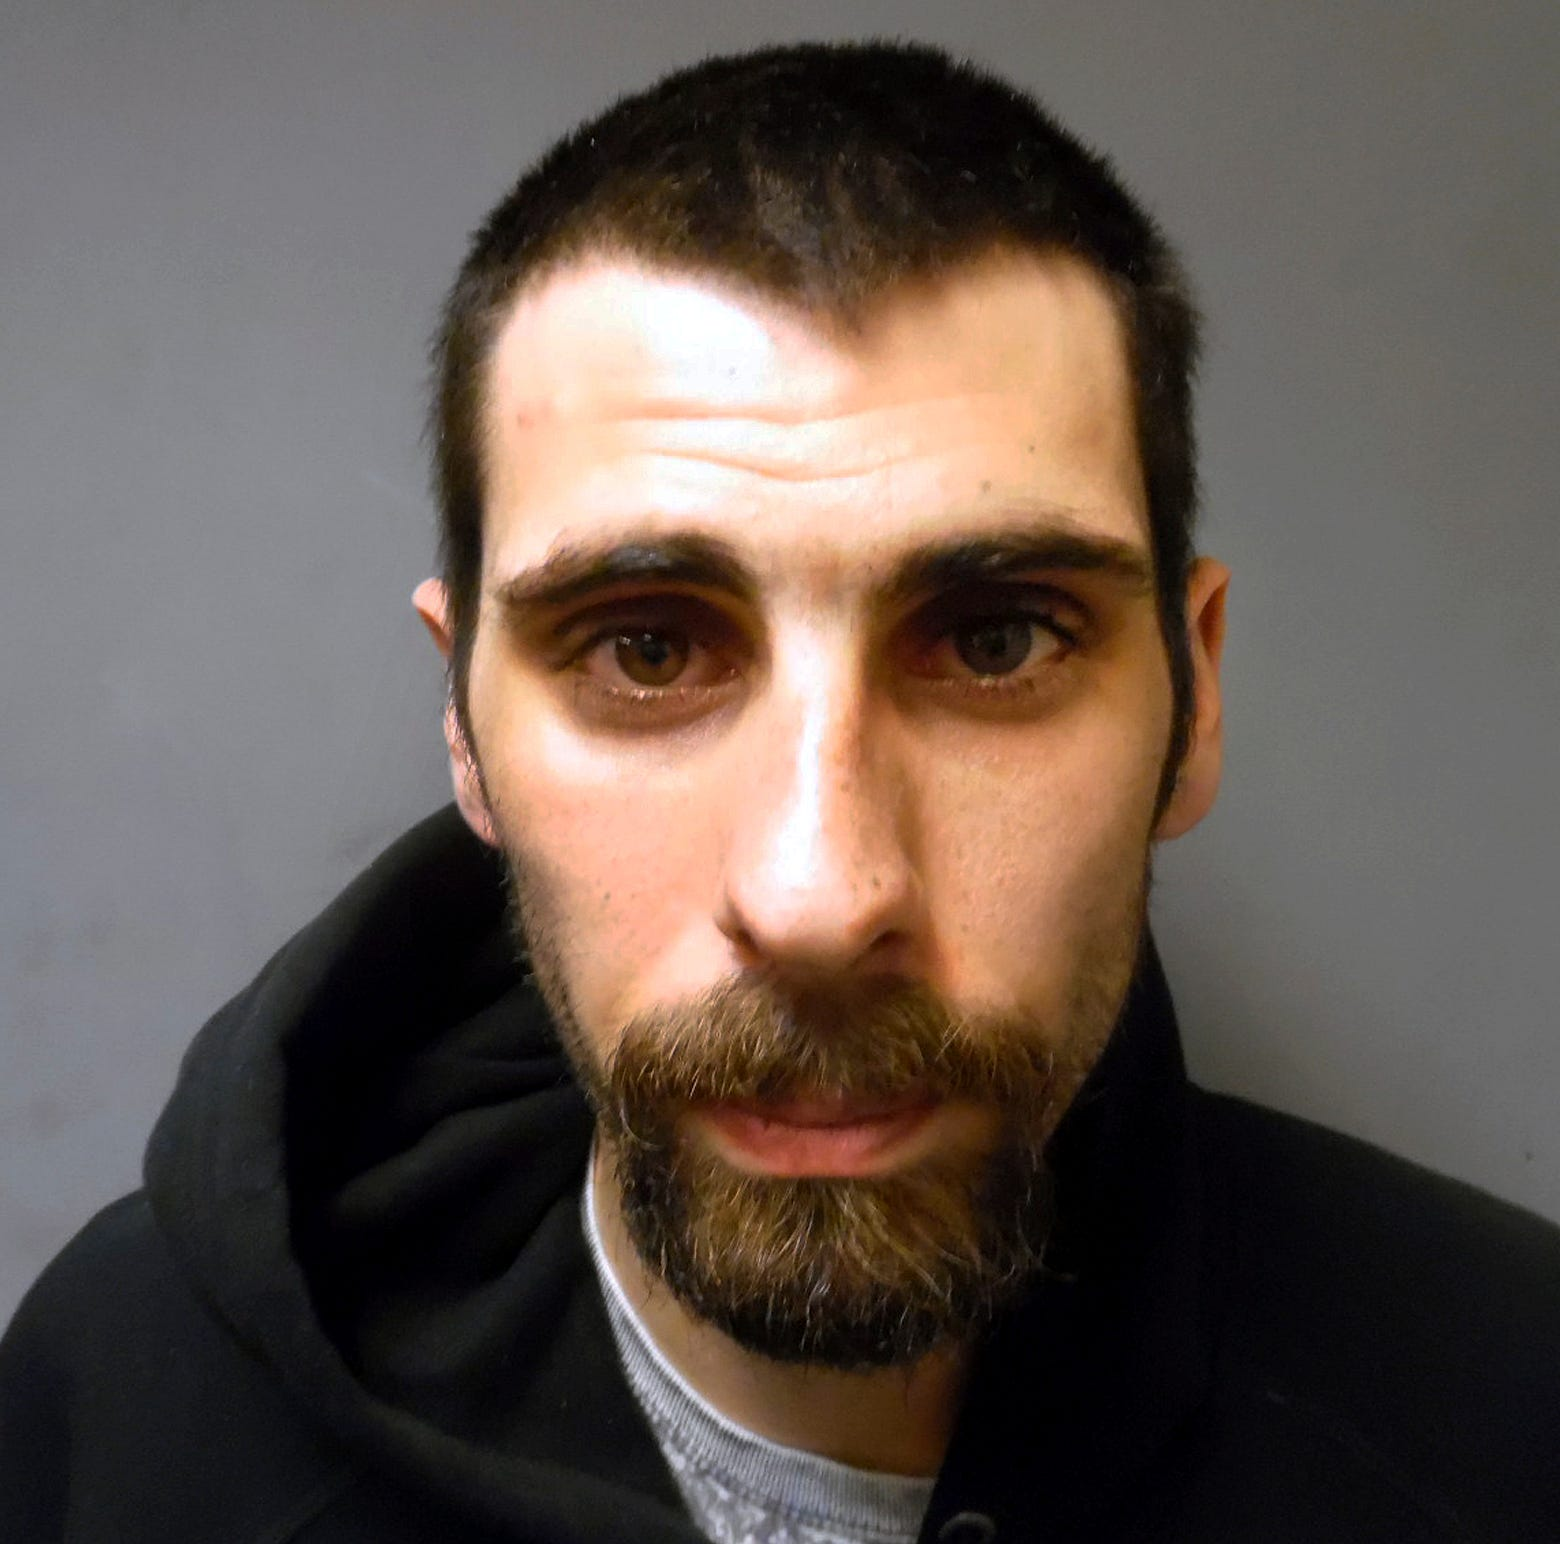 Vermont man charged with 2nd-degree murder in woman's death